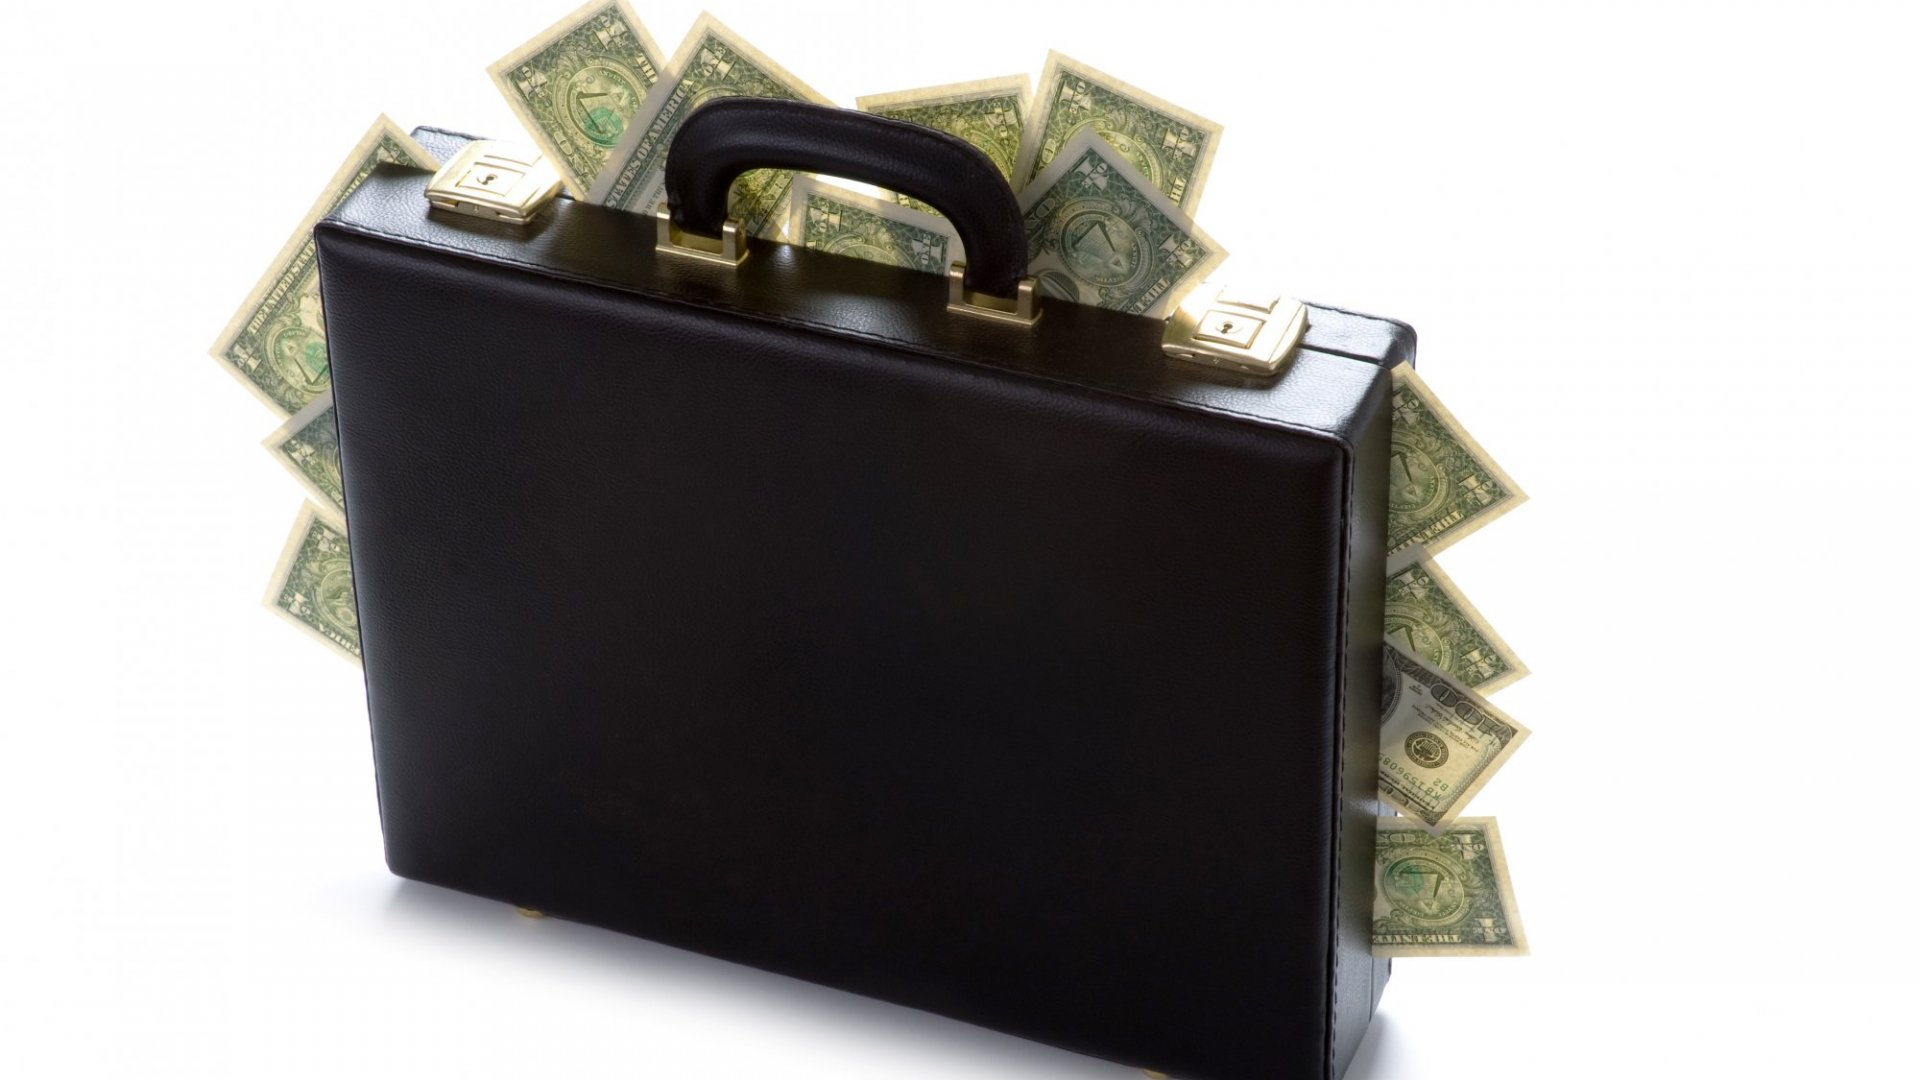 Should You Worry About Being Overpaid?